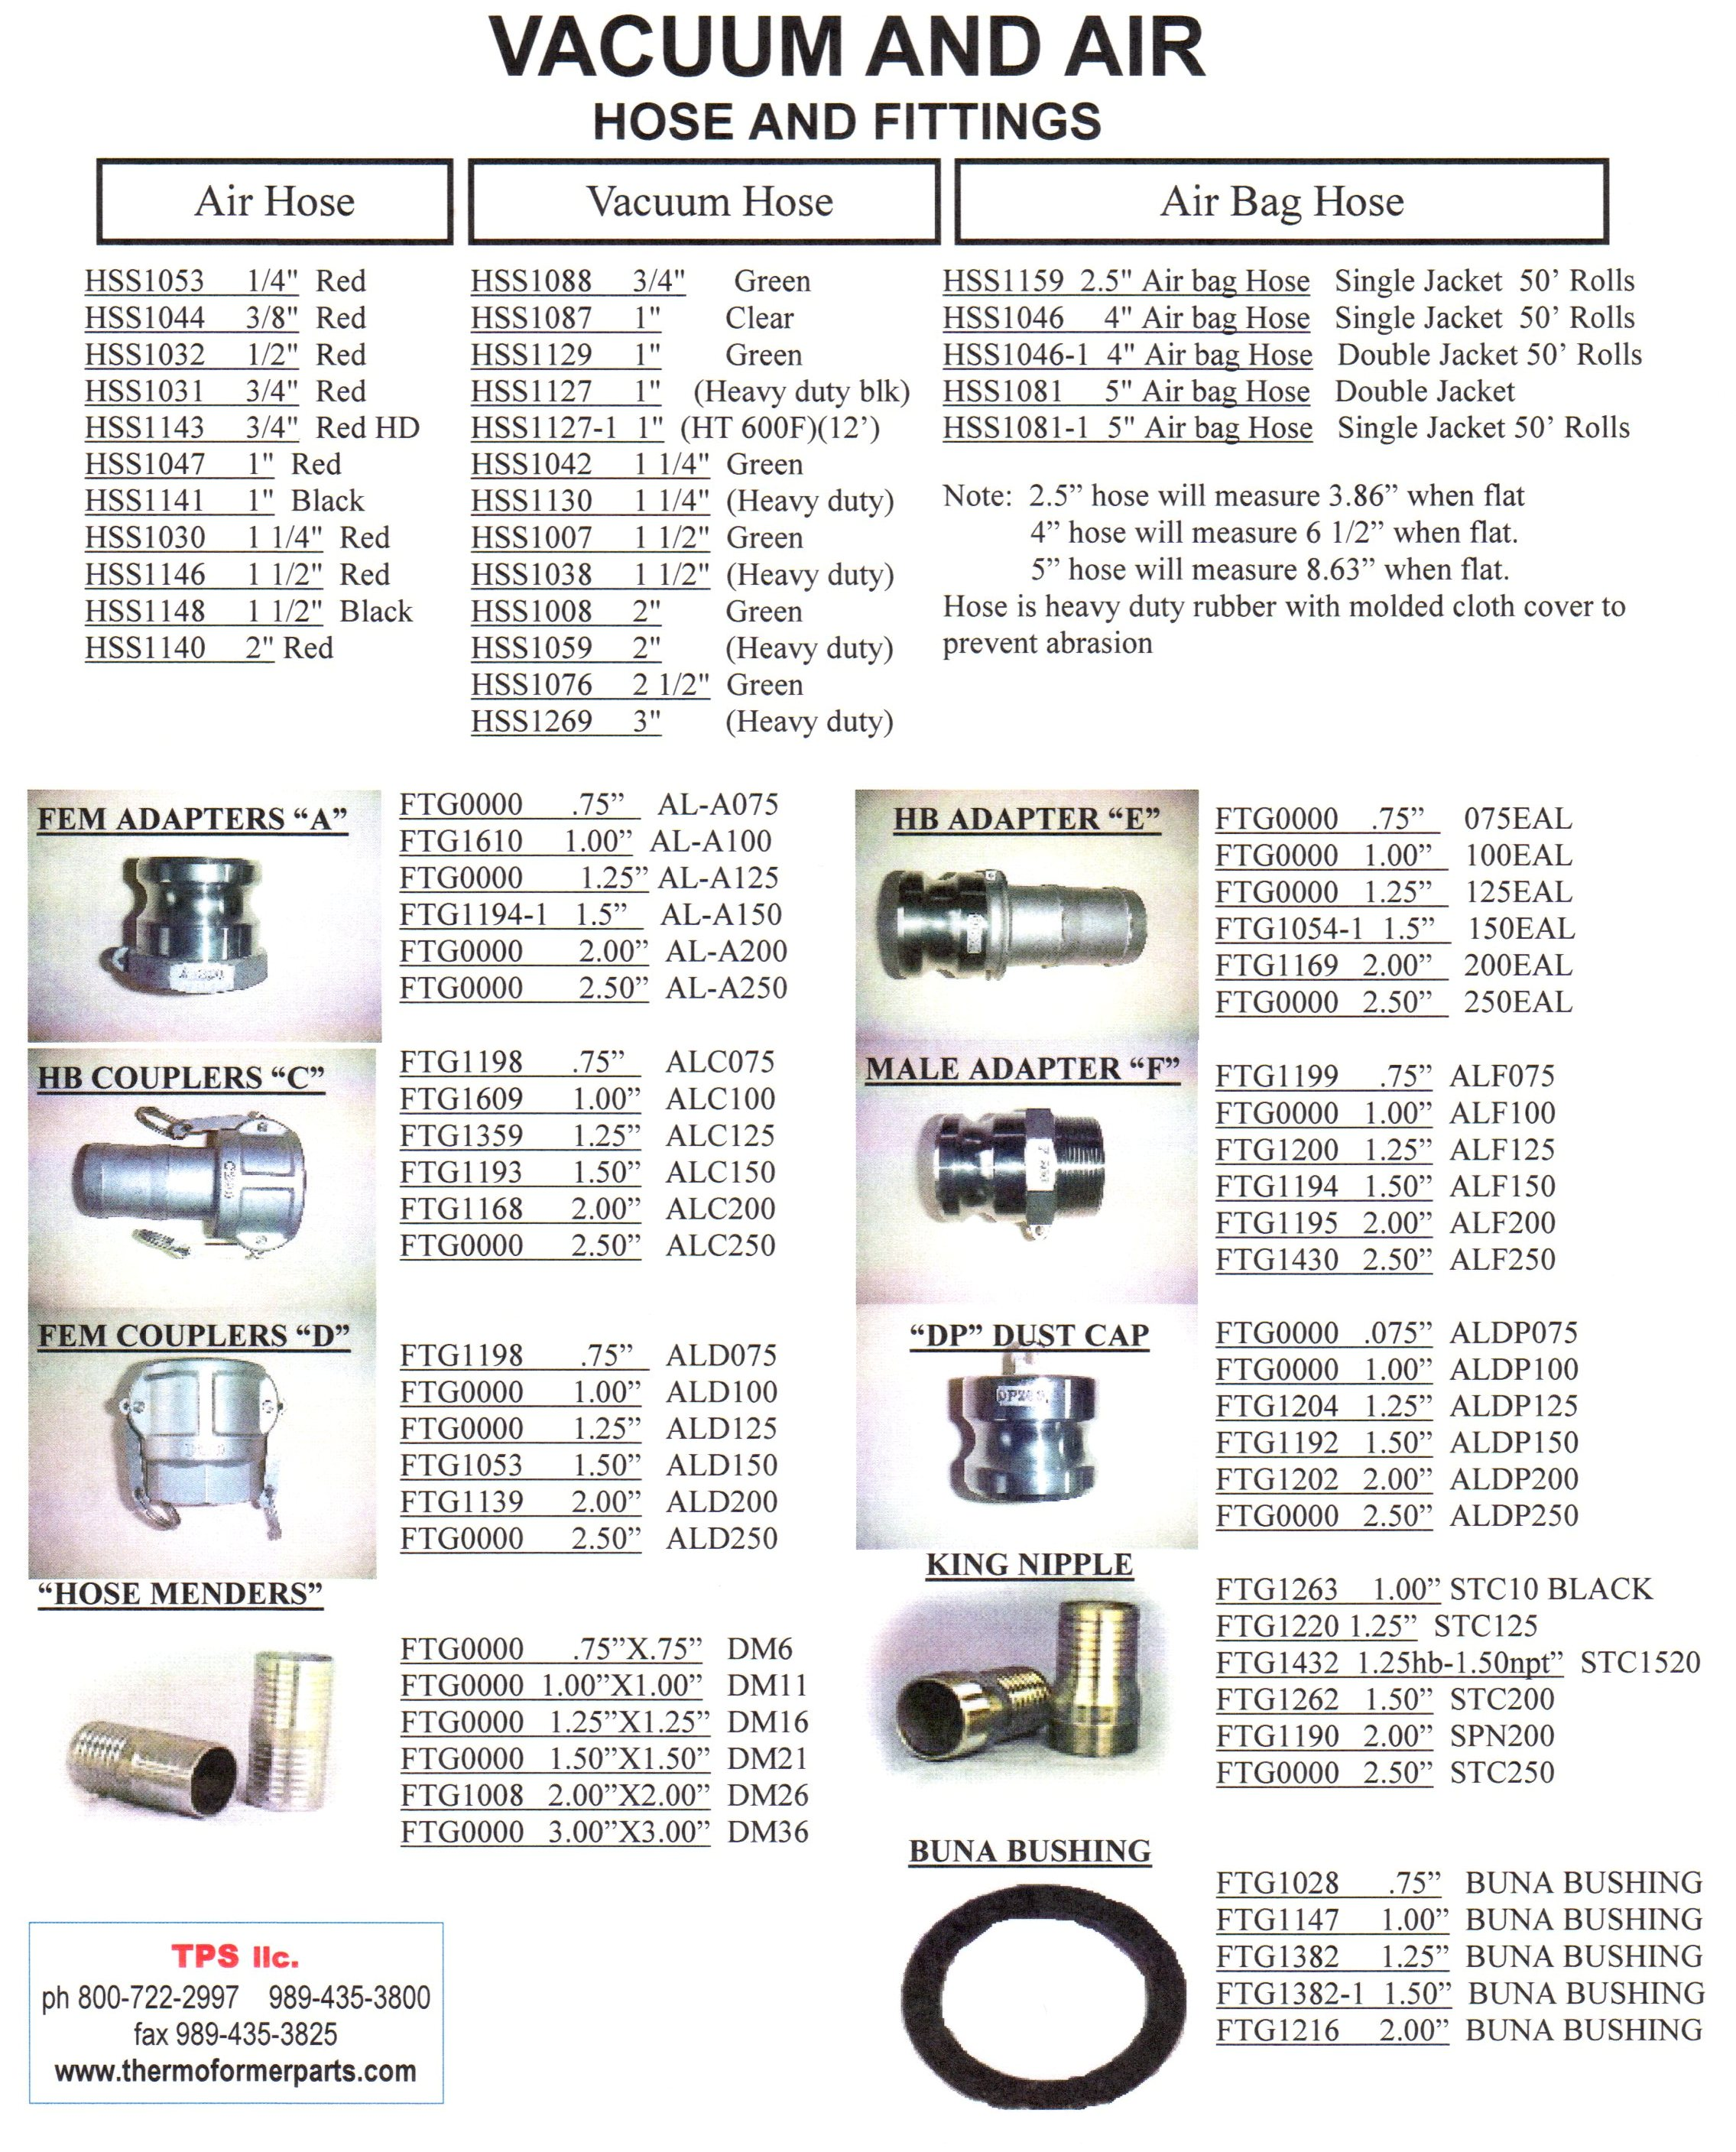 Hoses/Fittings Air/Vac